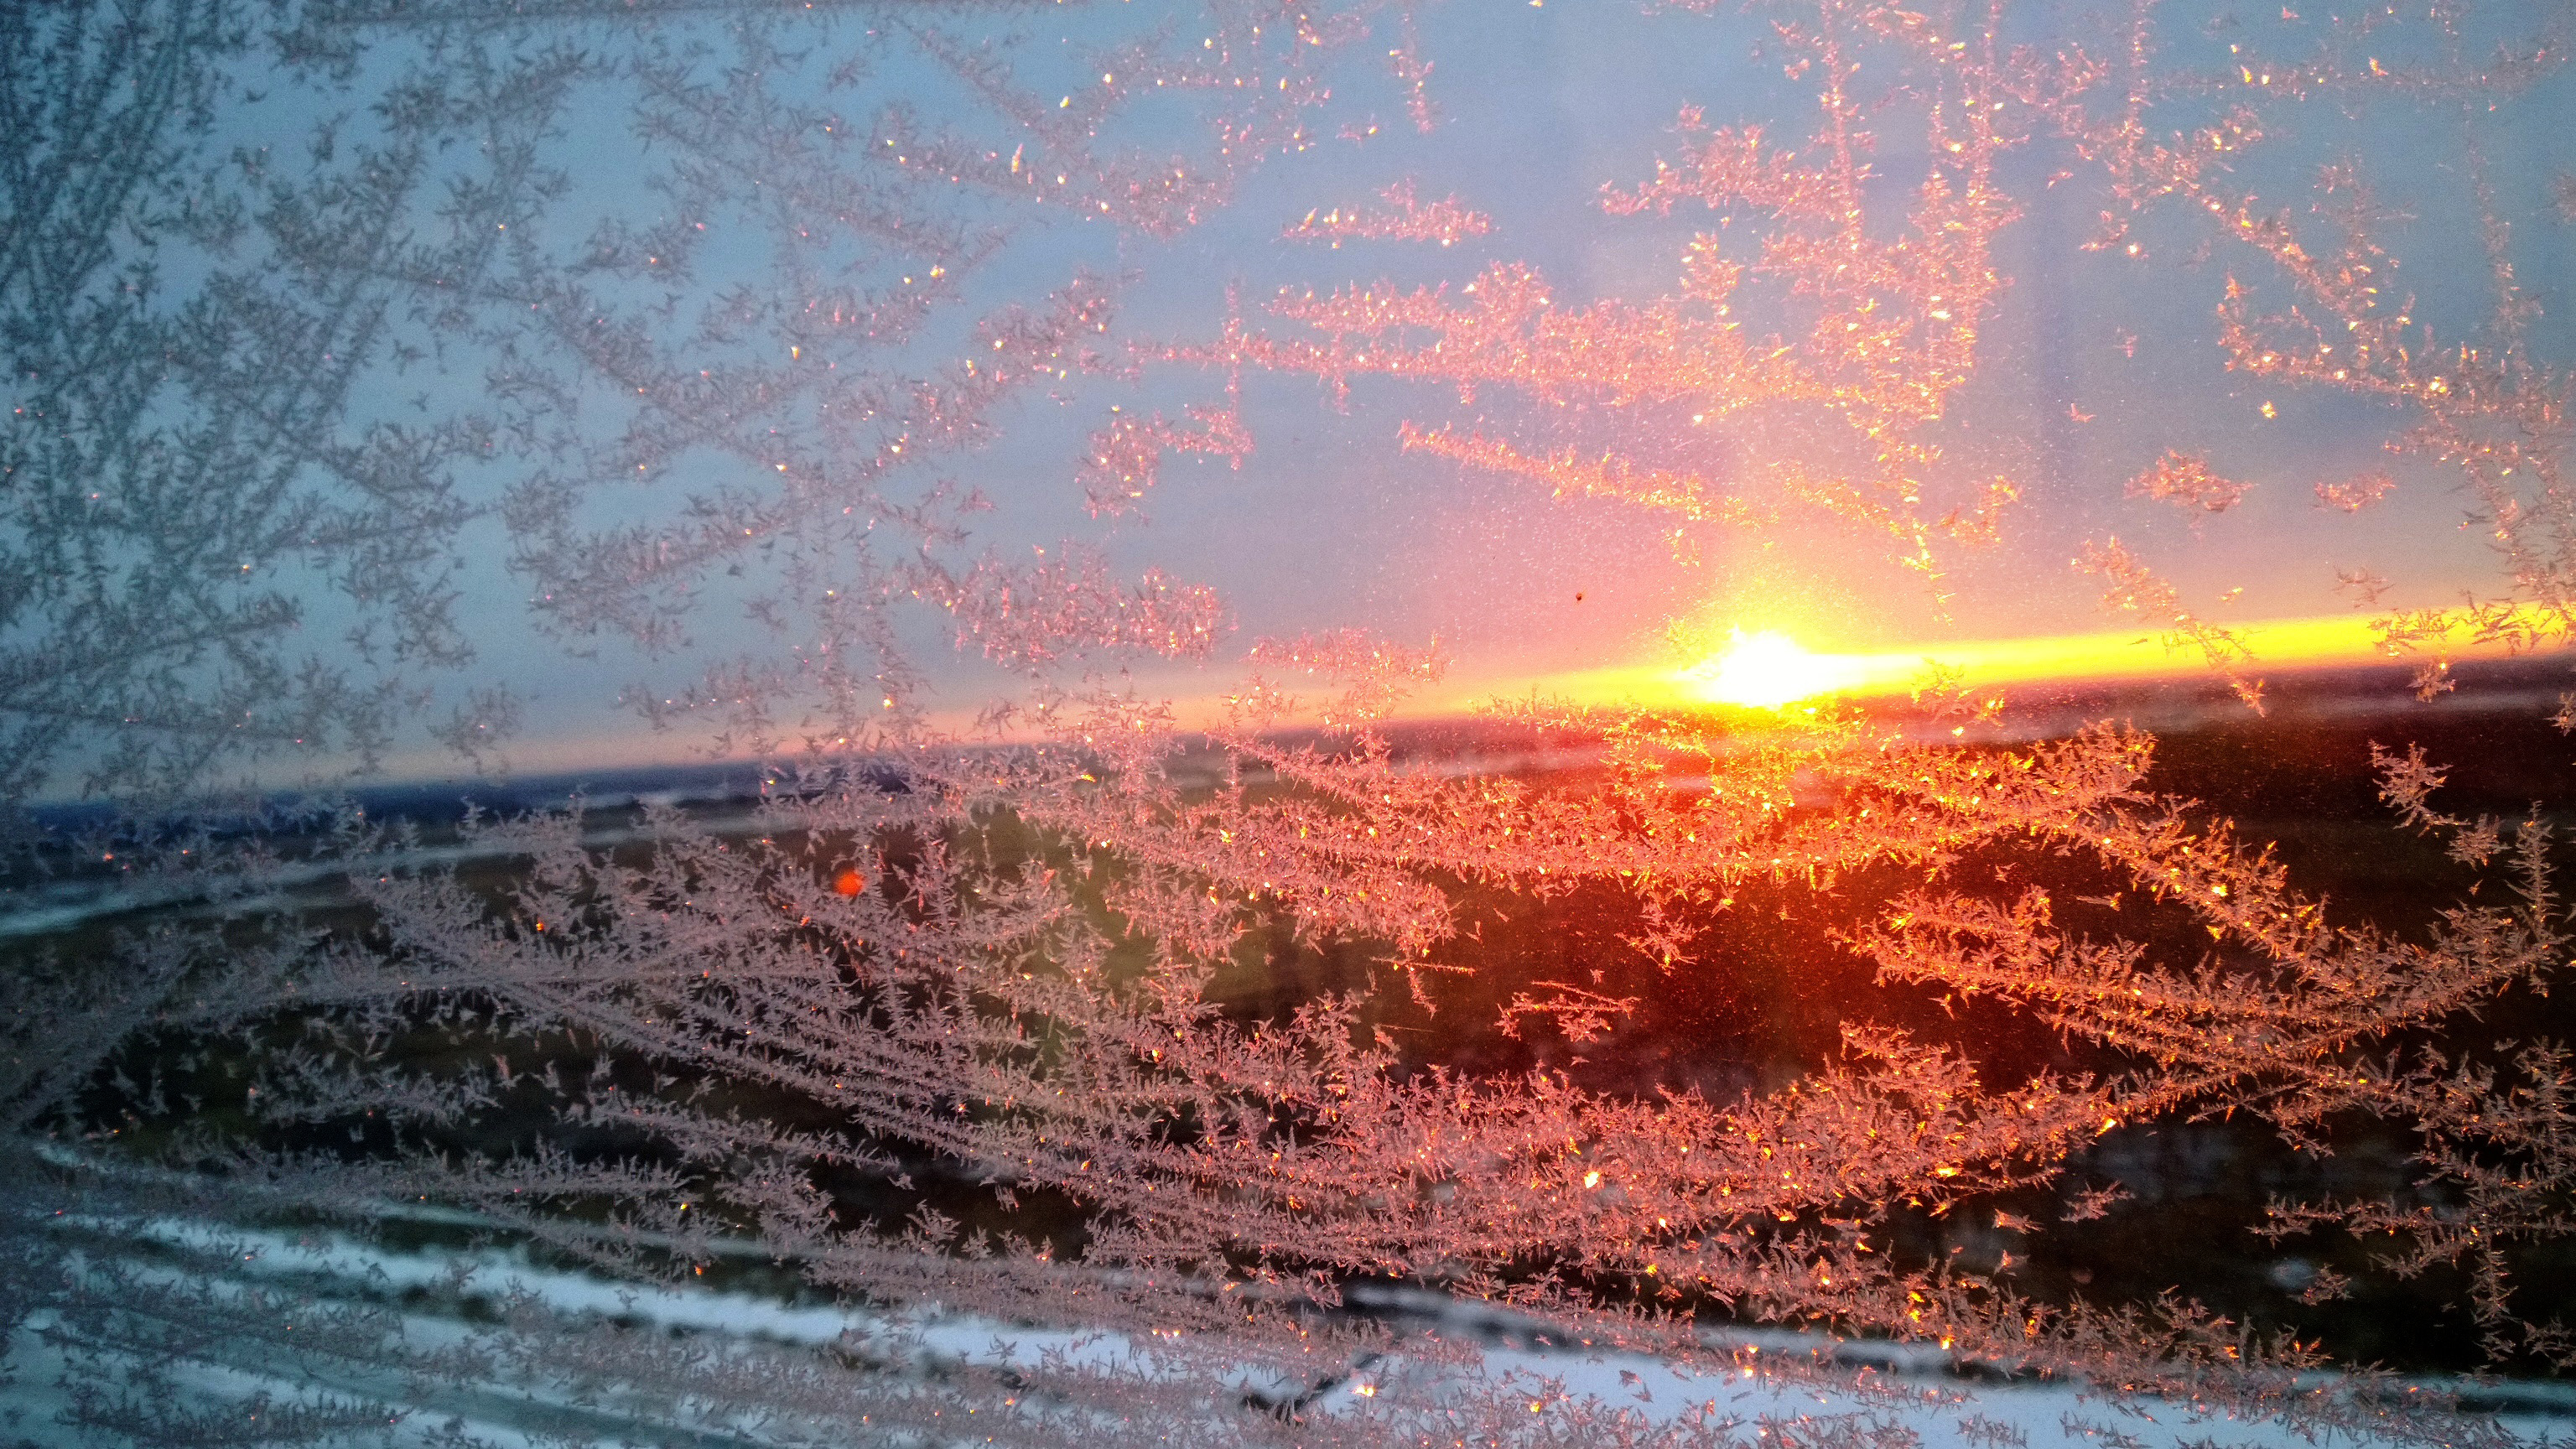 A view through a frost-covered window shows the sun at dawn on a 4-degree morning. Harry Ferguson III, PPD